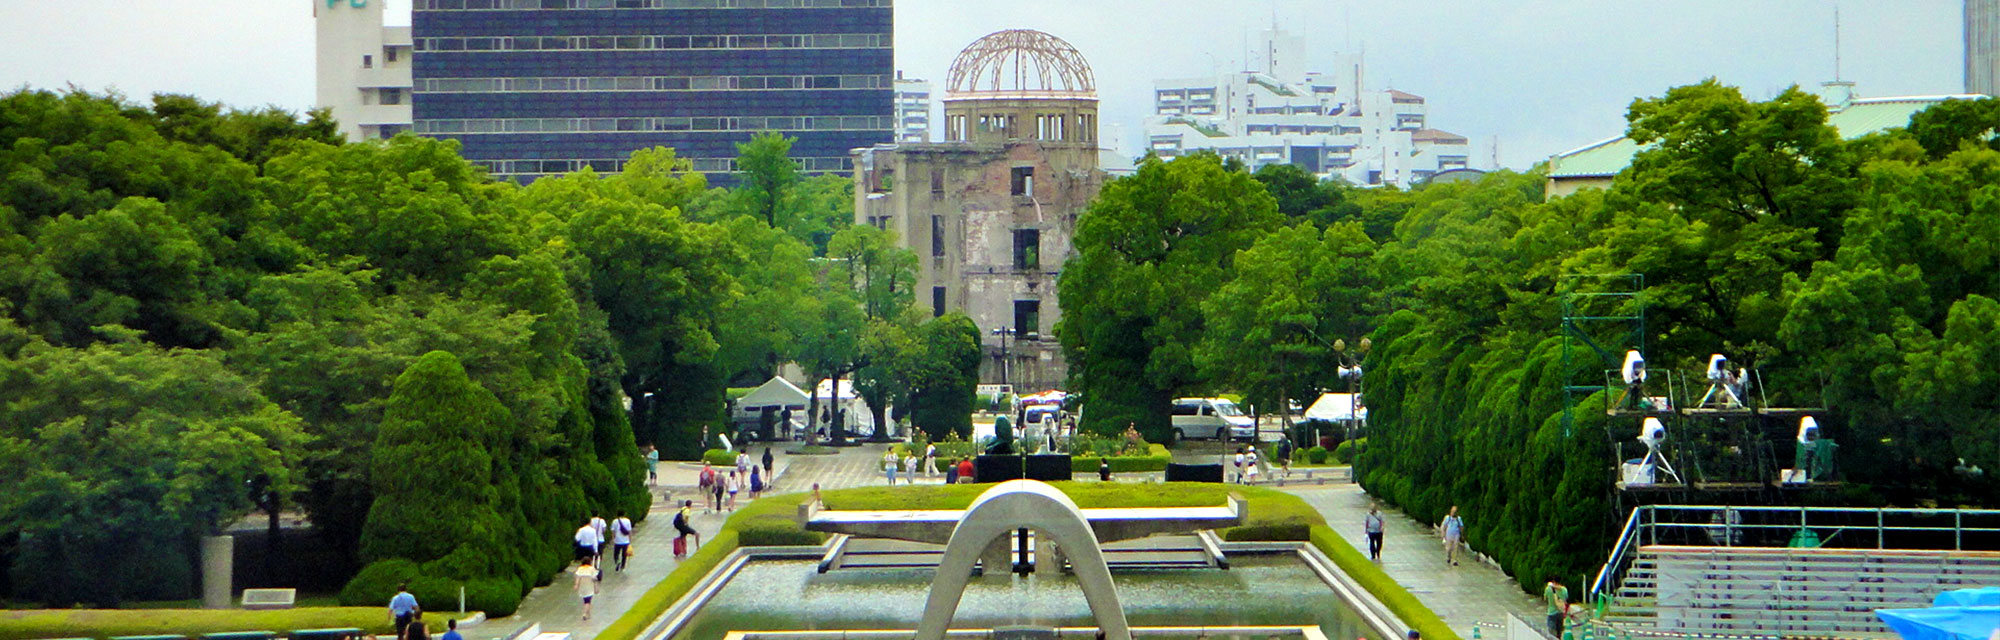 hiroshima essay The atomic bombings of hiroshima and nagasaki by the manhattan engineer district, june 29, 1946 introduction statement by the president of the united states.